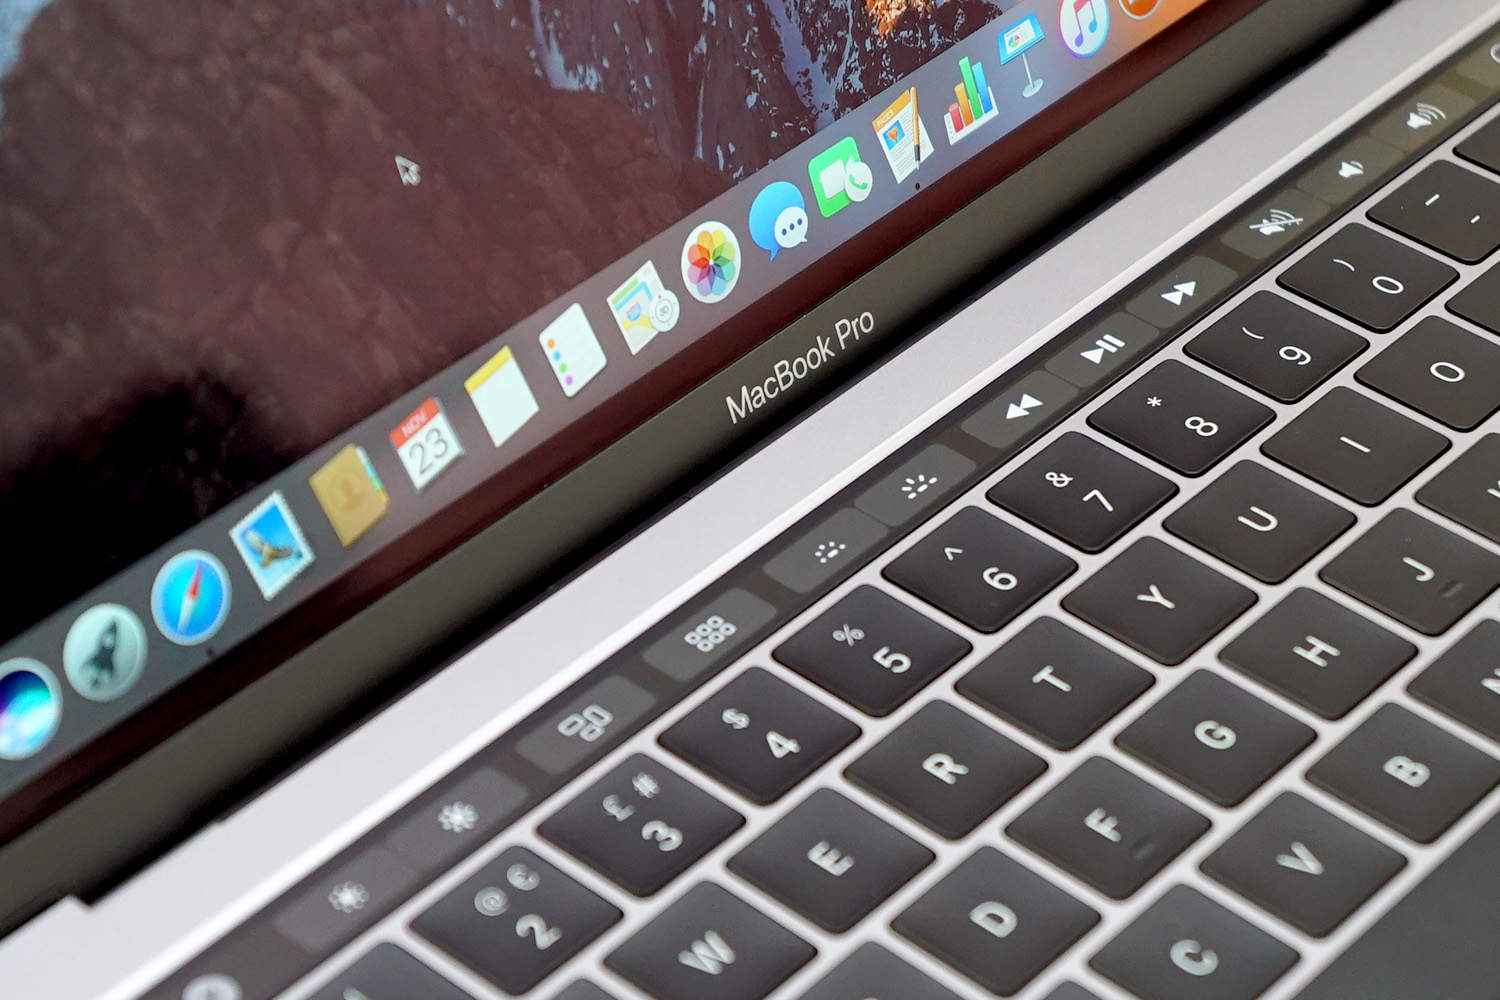 MacBook Pro with Touch Bar unboxing First look is amazing